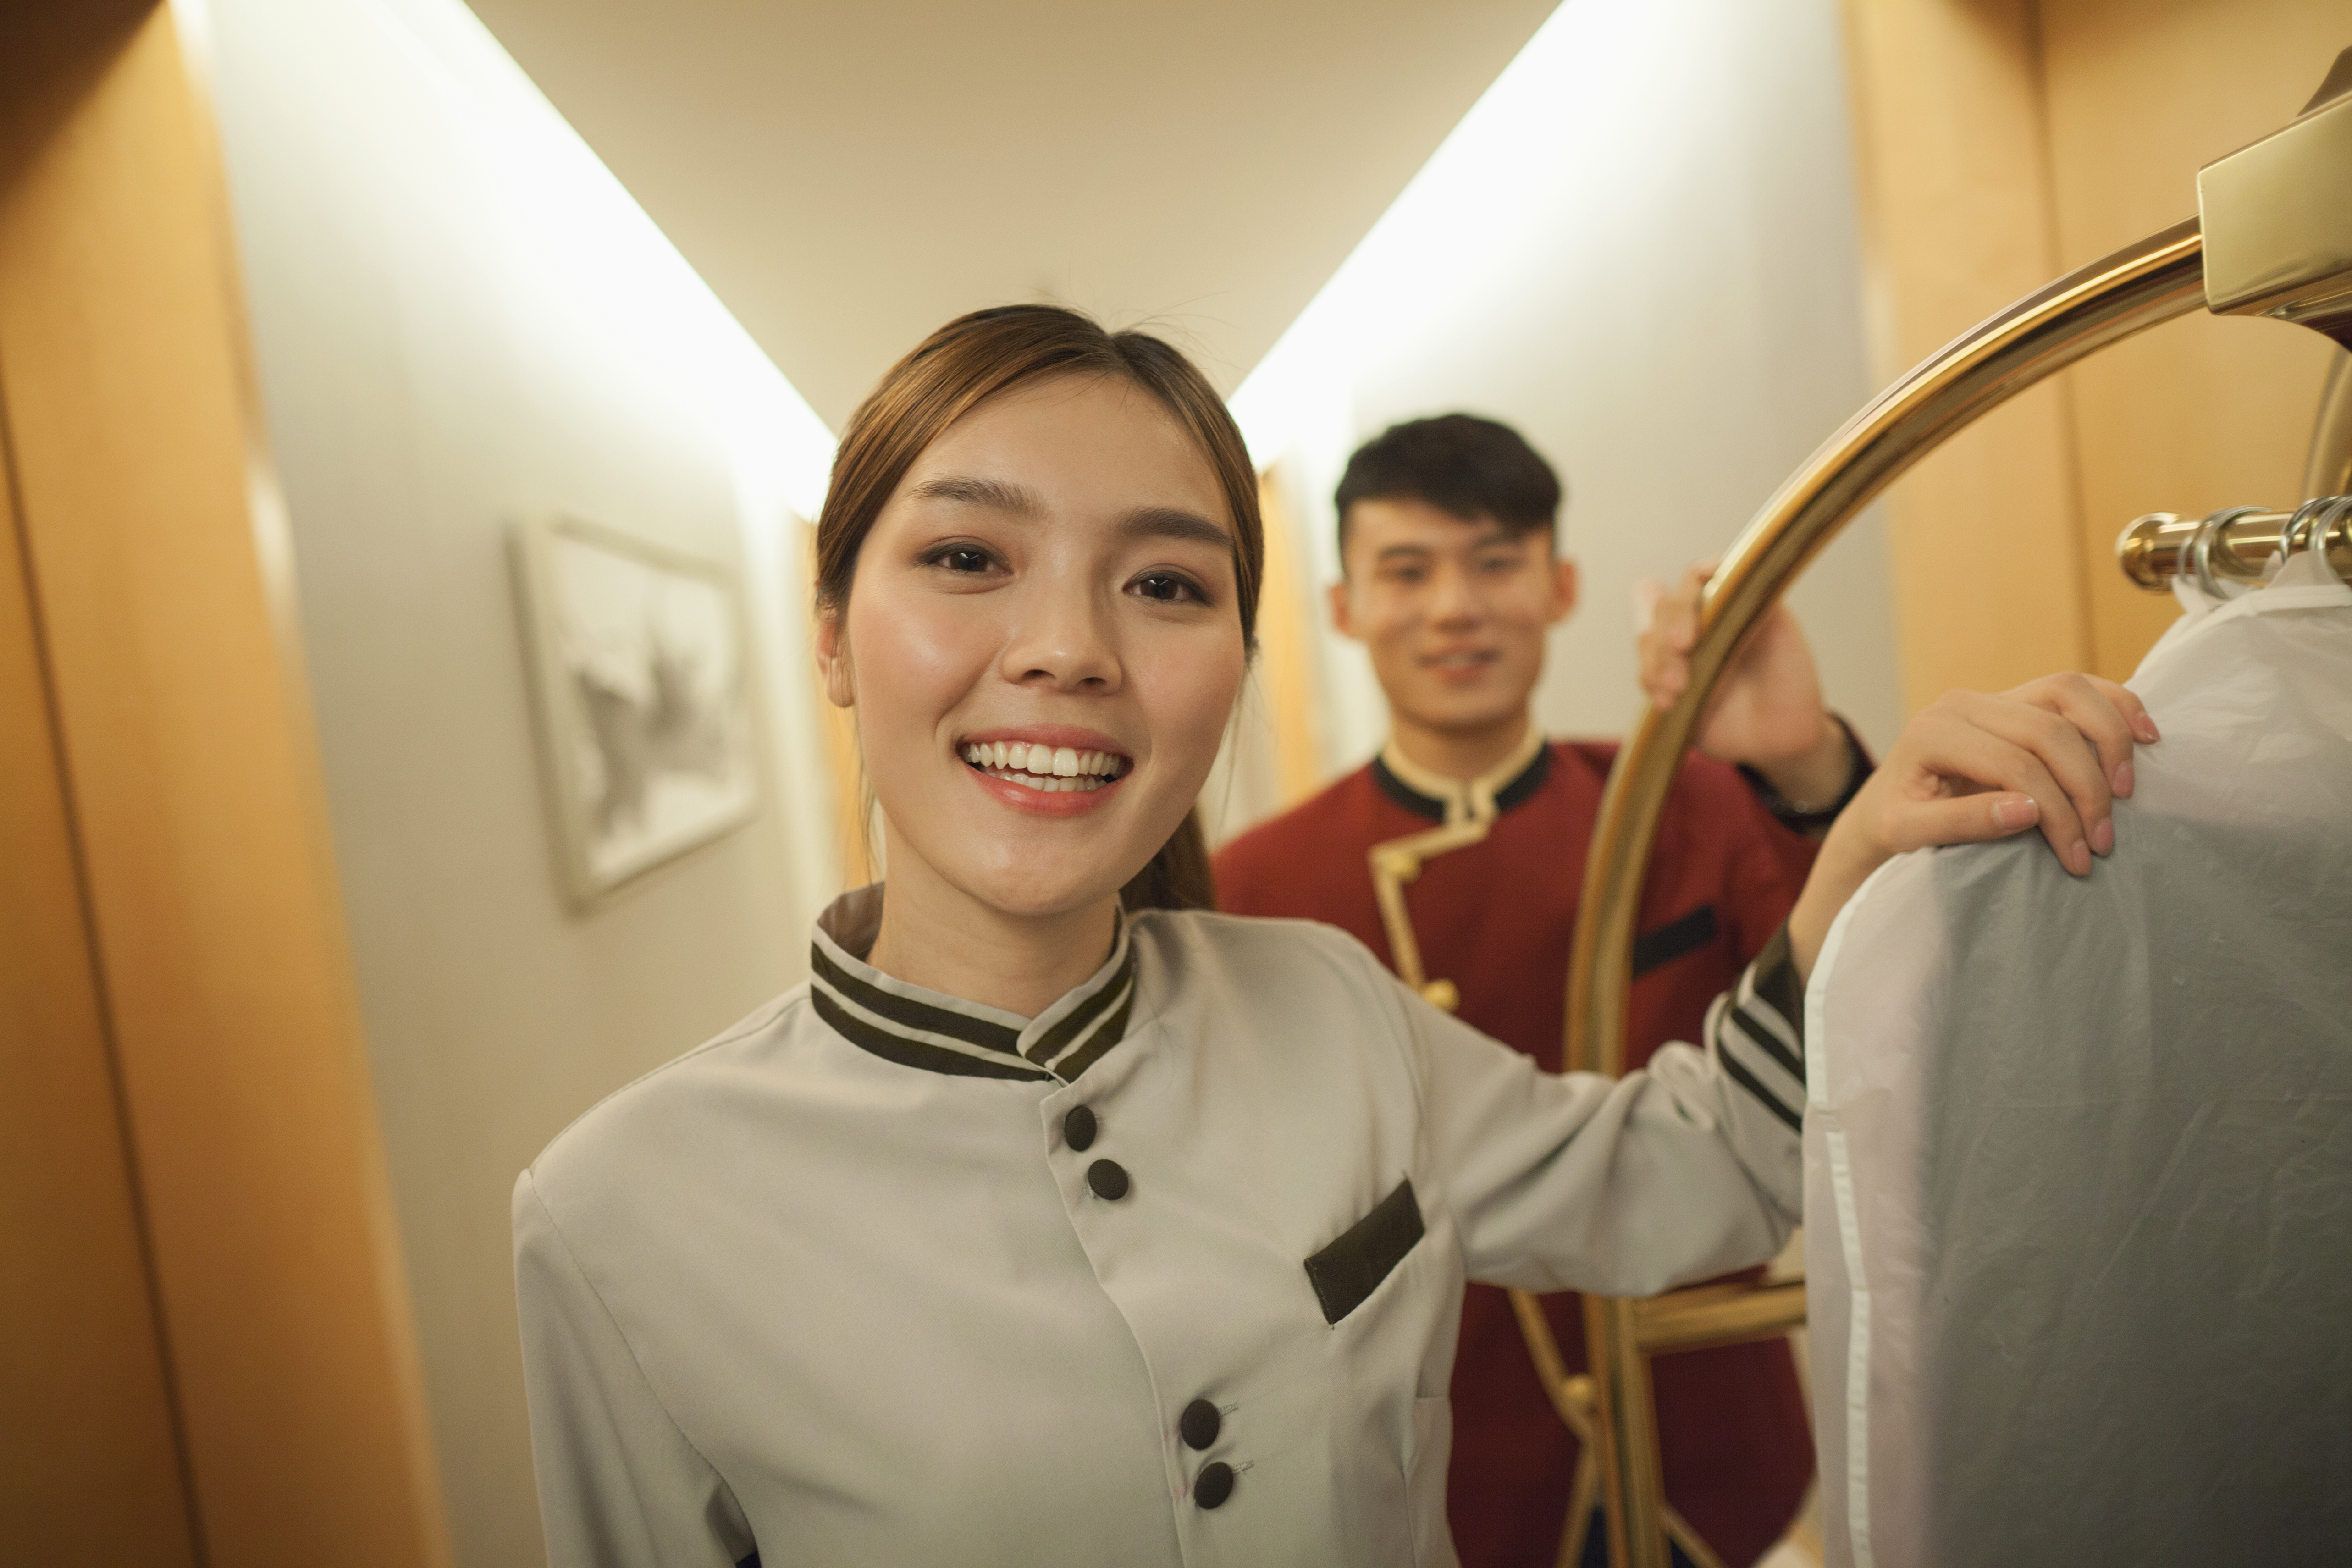 bigstock-Bellhops-in-the-doorway-smilin-50560568